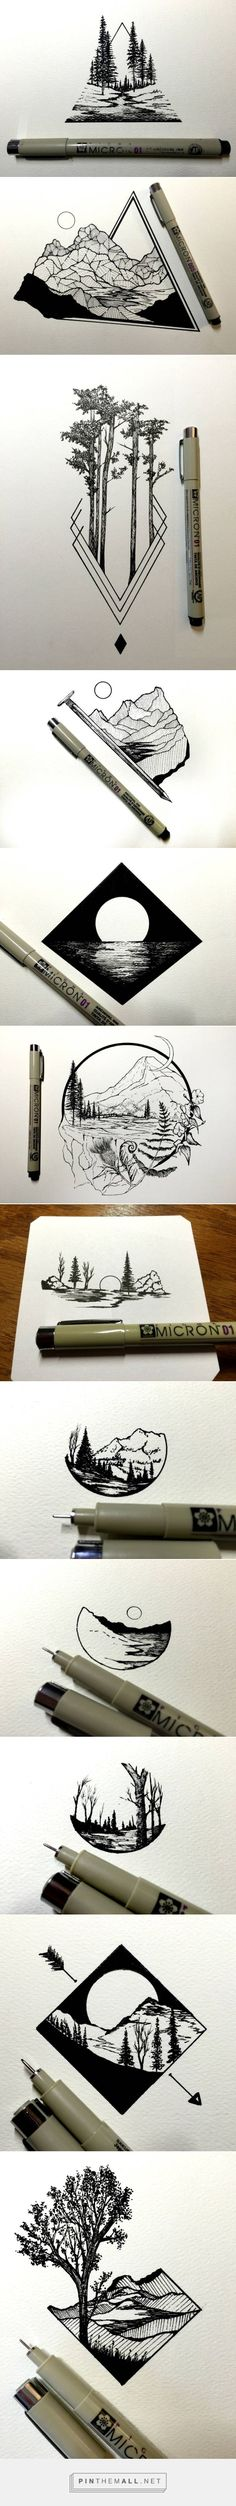 Daily Drawings by Derek Myers – Fubiz Media - created via https://pinthemall.n